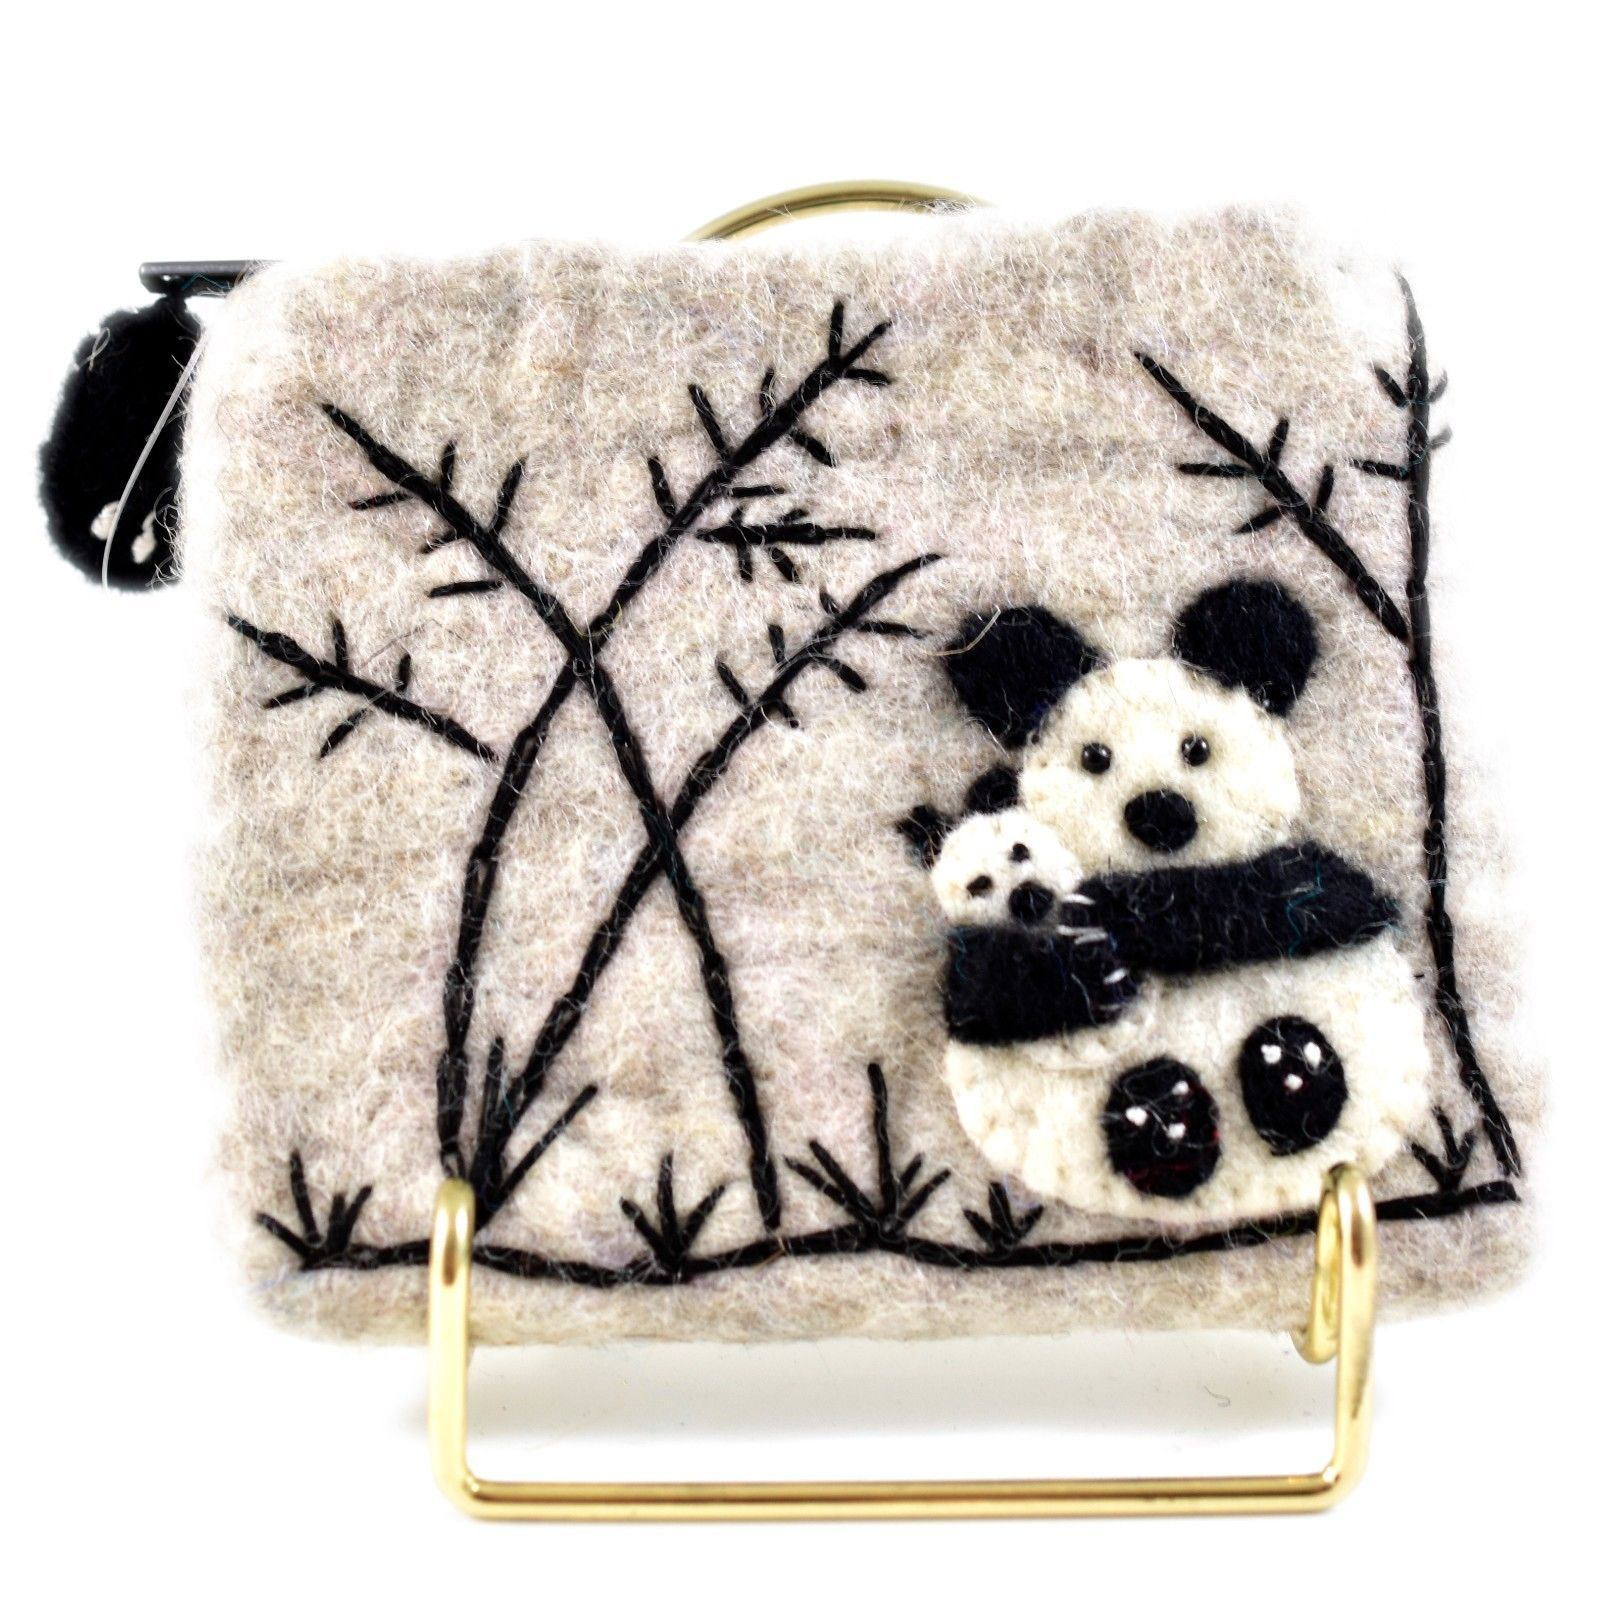 Wild Woolies Handmade Felted Wool Panda Family Coin Purse Bag Made in Nepal